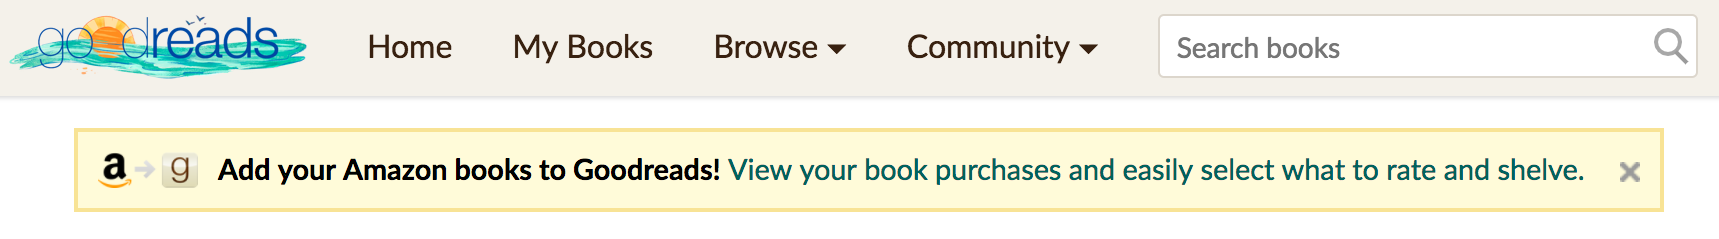 goodreads hook up your amazon purchases